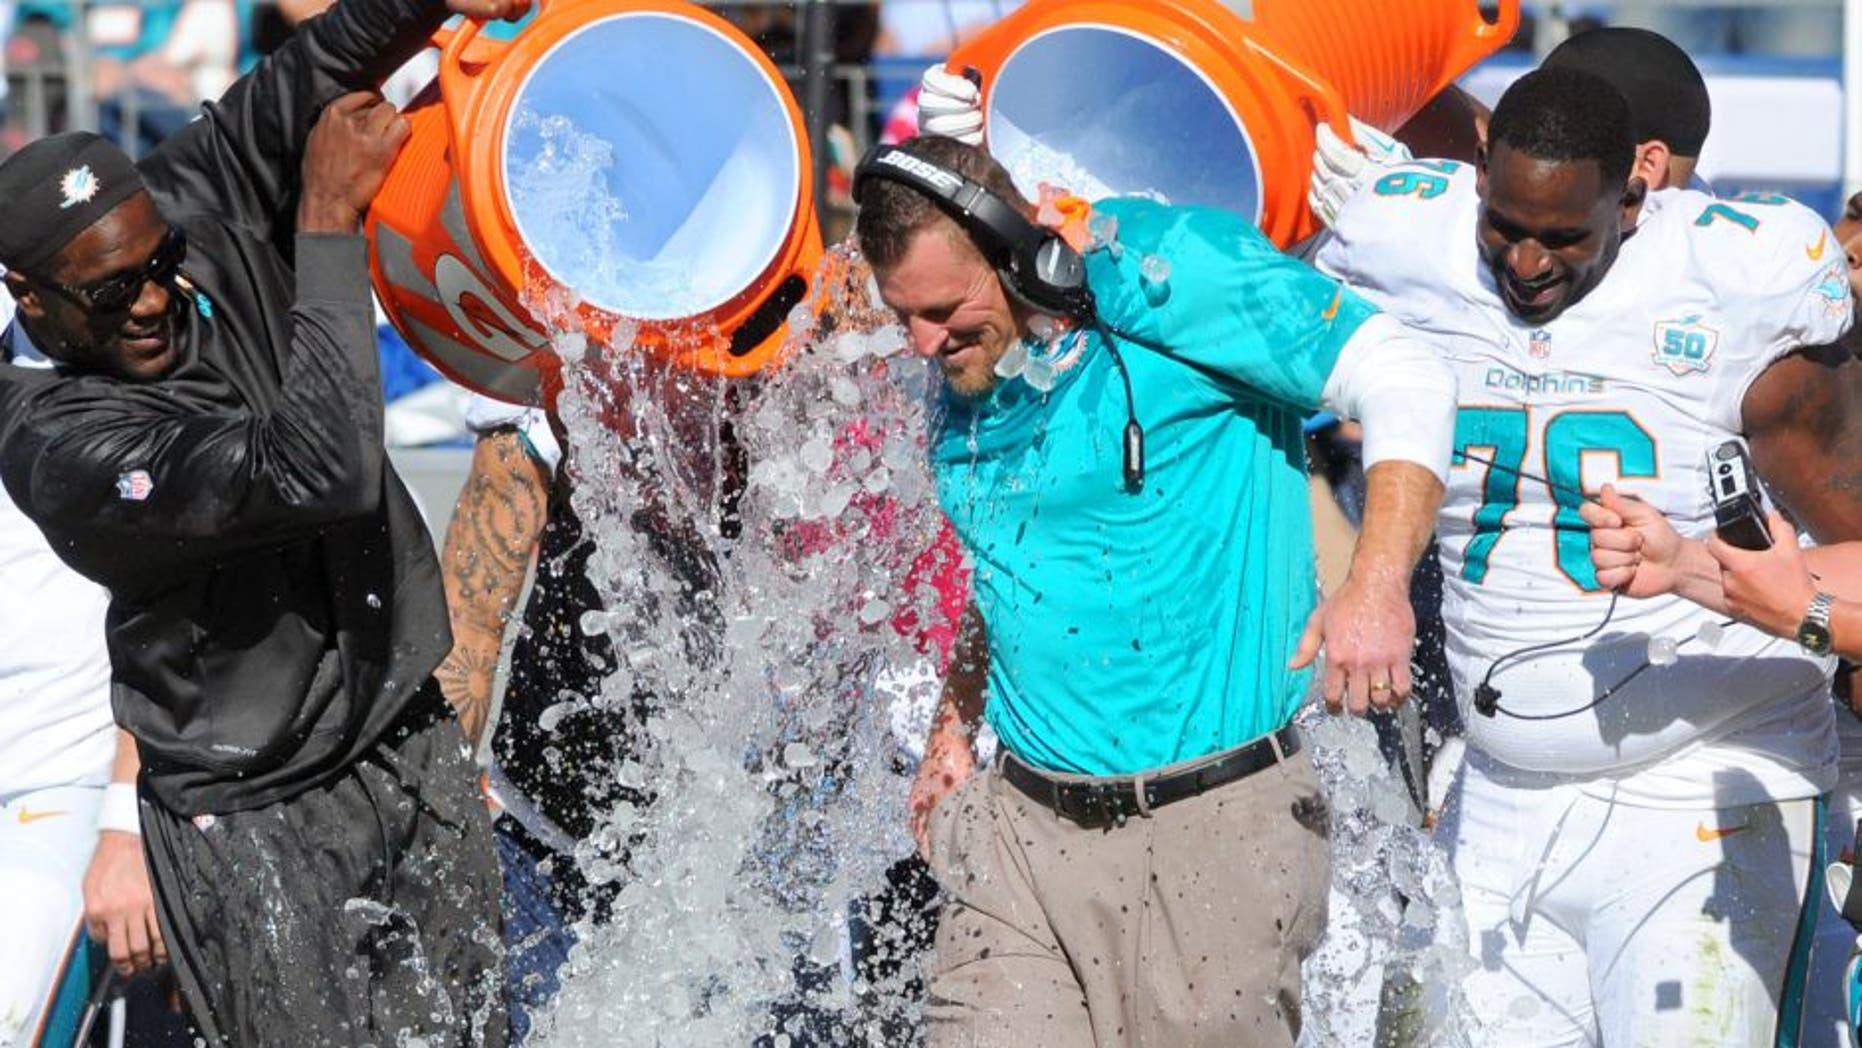 Oct 18, 2015; Nashville, TN, USA; Miami Dolphins interim head coach Dan Campbell is dumped with Gatorade after a win against the Tennessee Titans at Nissan Stadium. The Dolphins won 38-10. Mandatory Credit: Christopher Hanewinckel-USA TODAY Sports